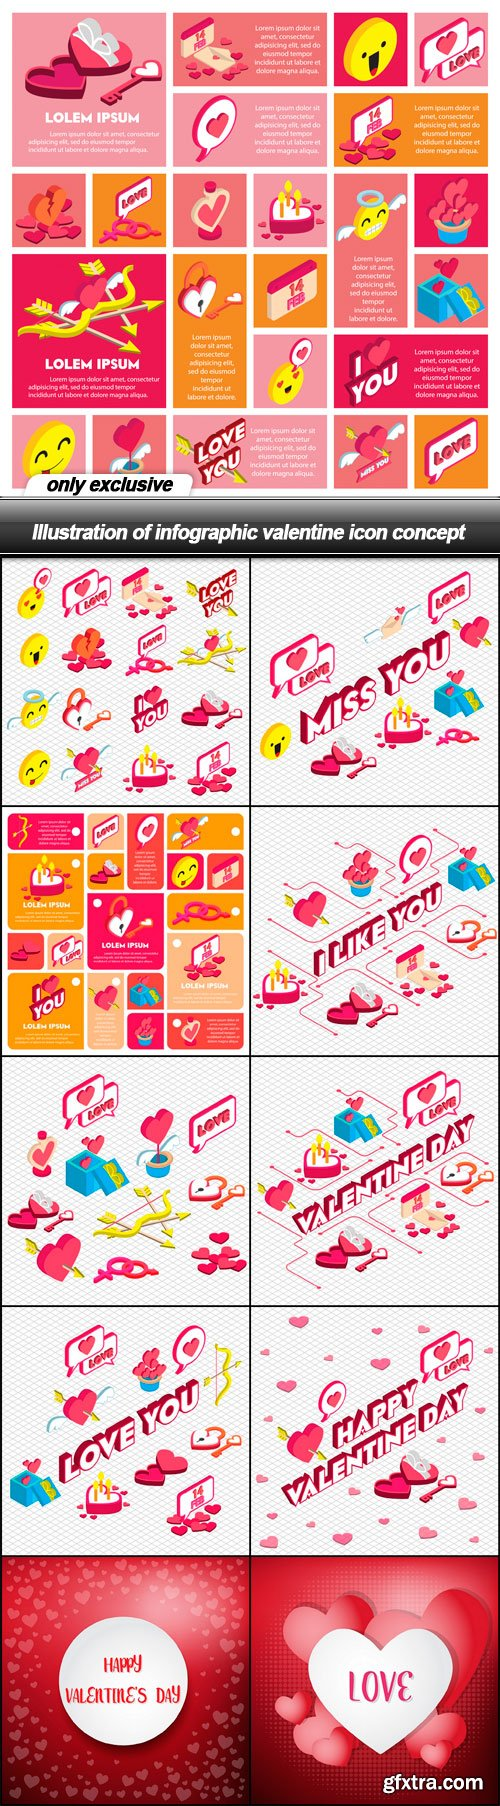 Illustration of infographic valentine icon concept - 11 EPS